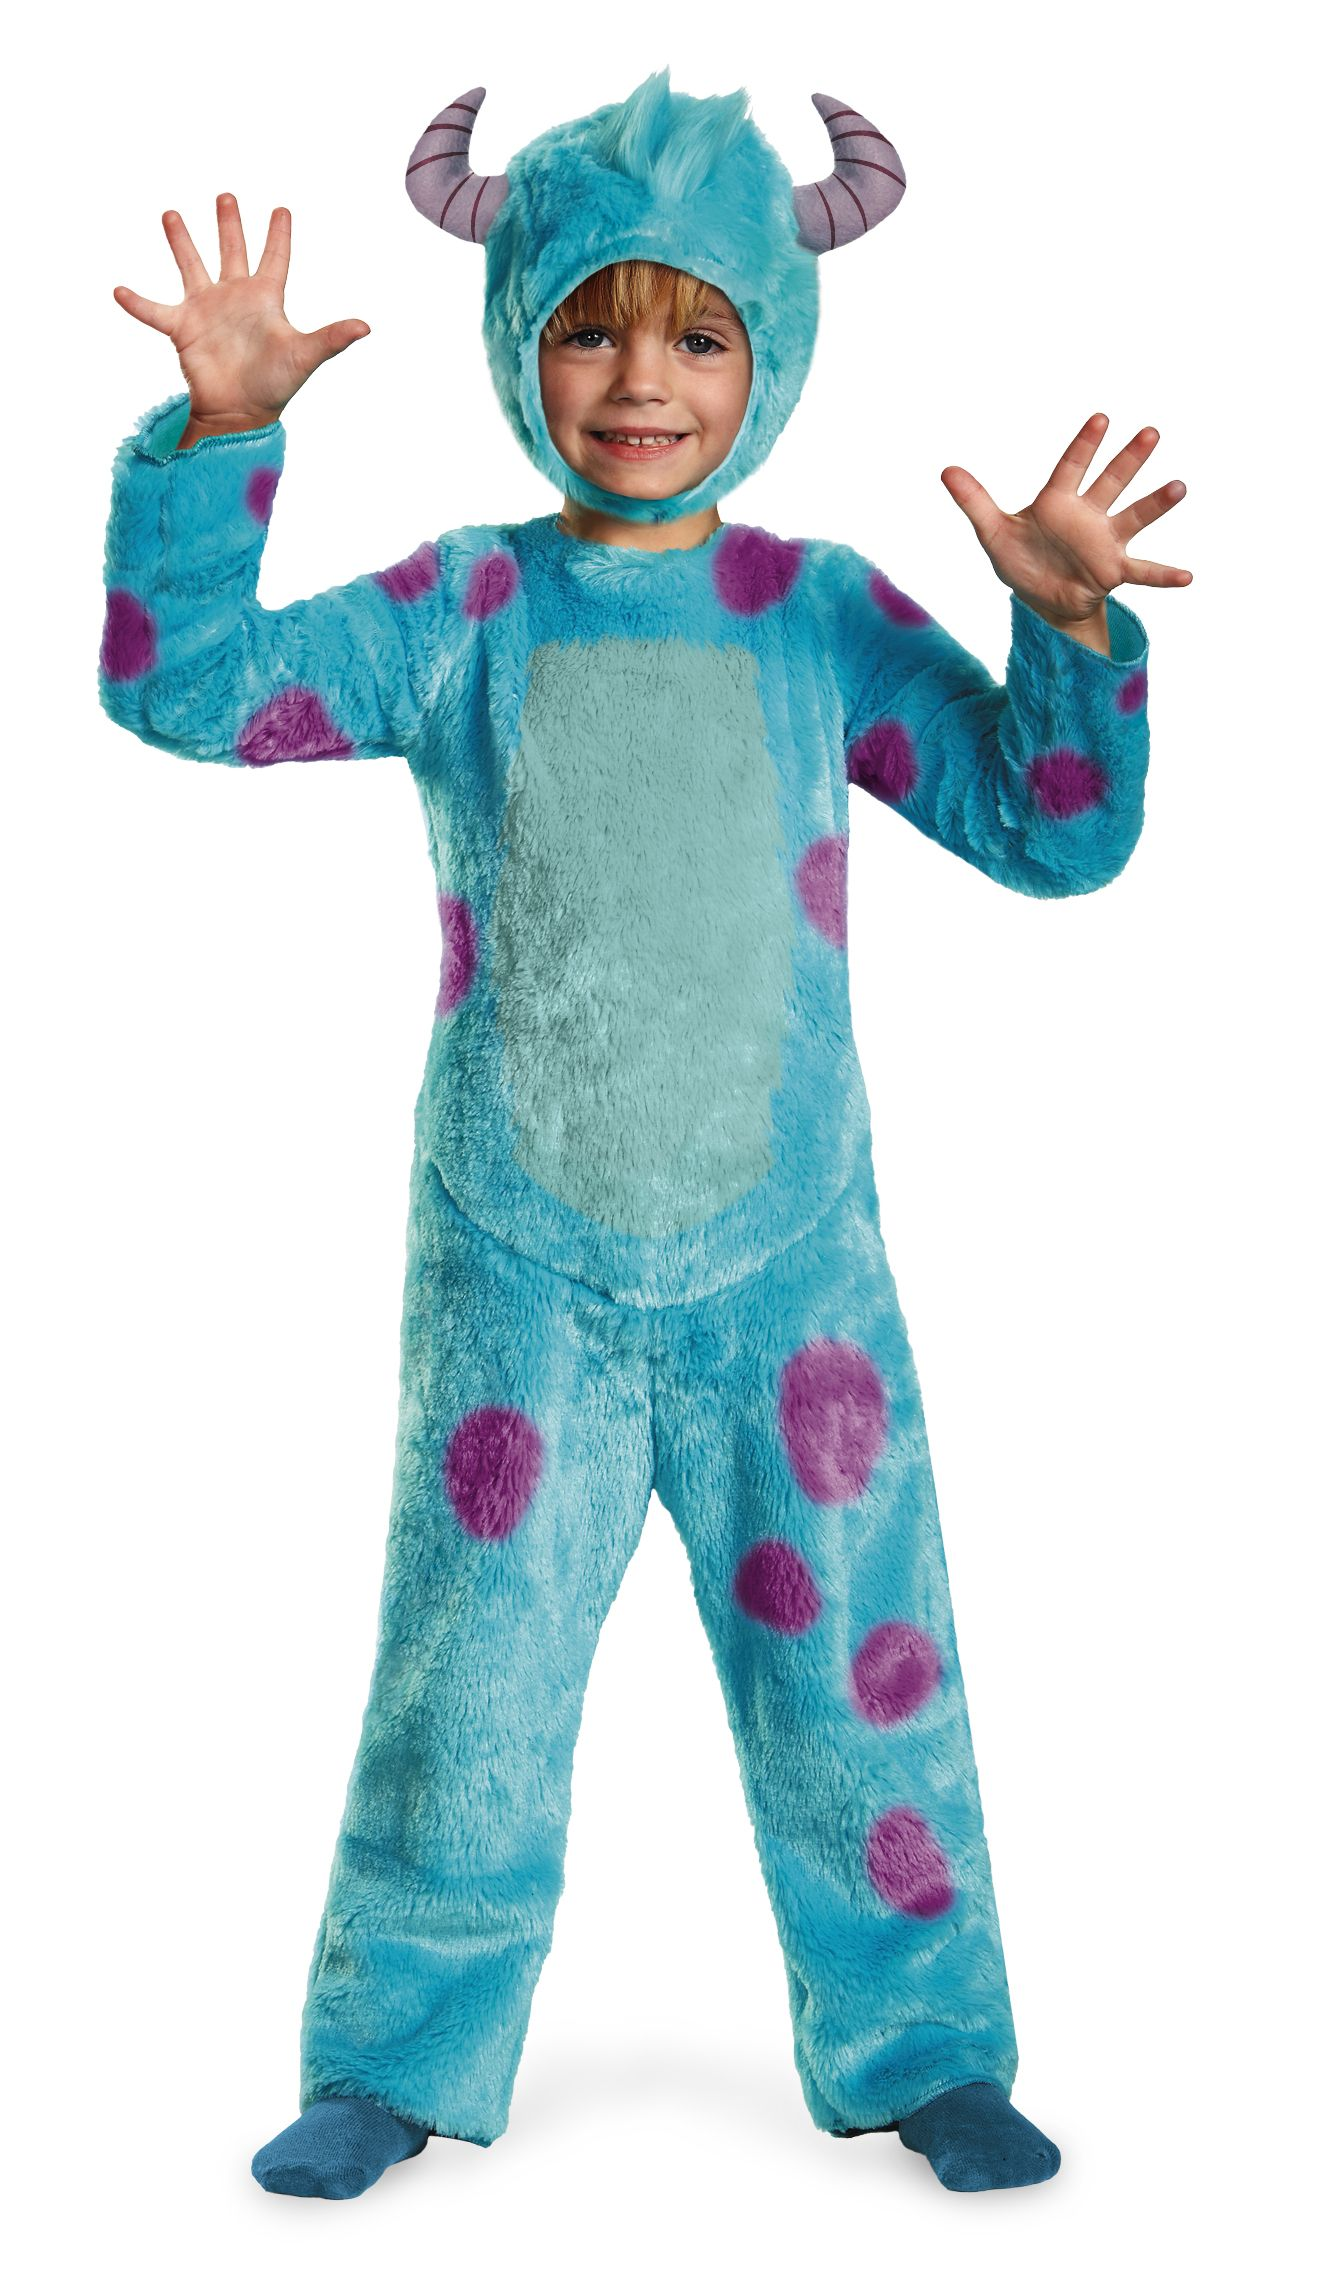 fuzzy sulley monsters toddler halloween costume - Monsters Inc Baby Halloween Costumes